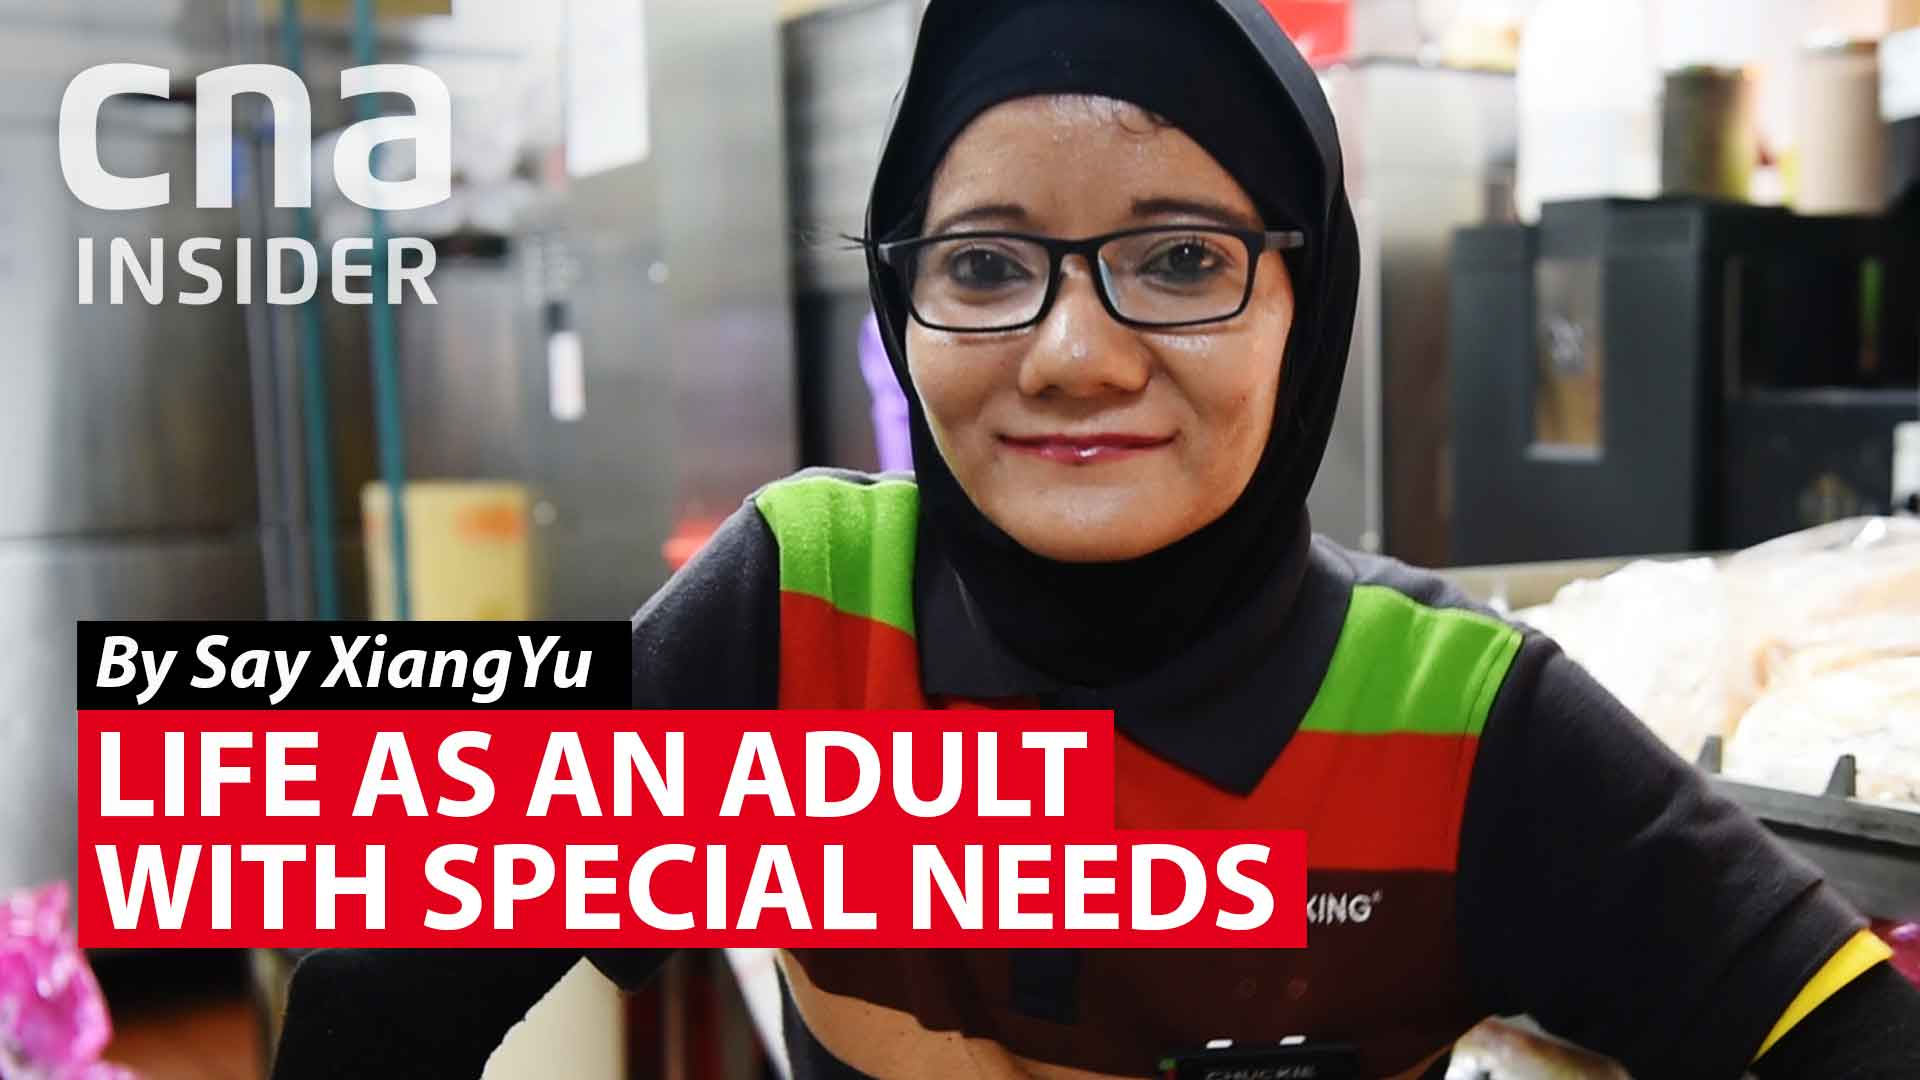 Life as an adult with special needs